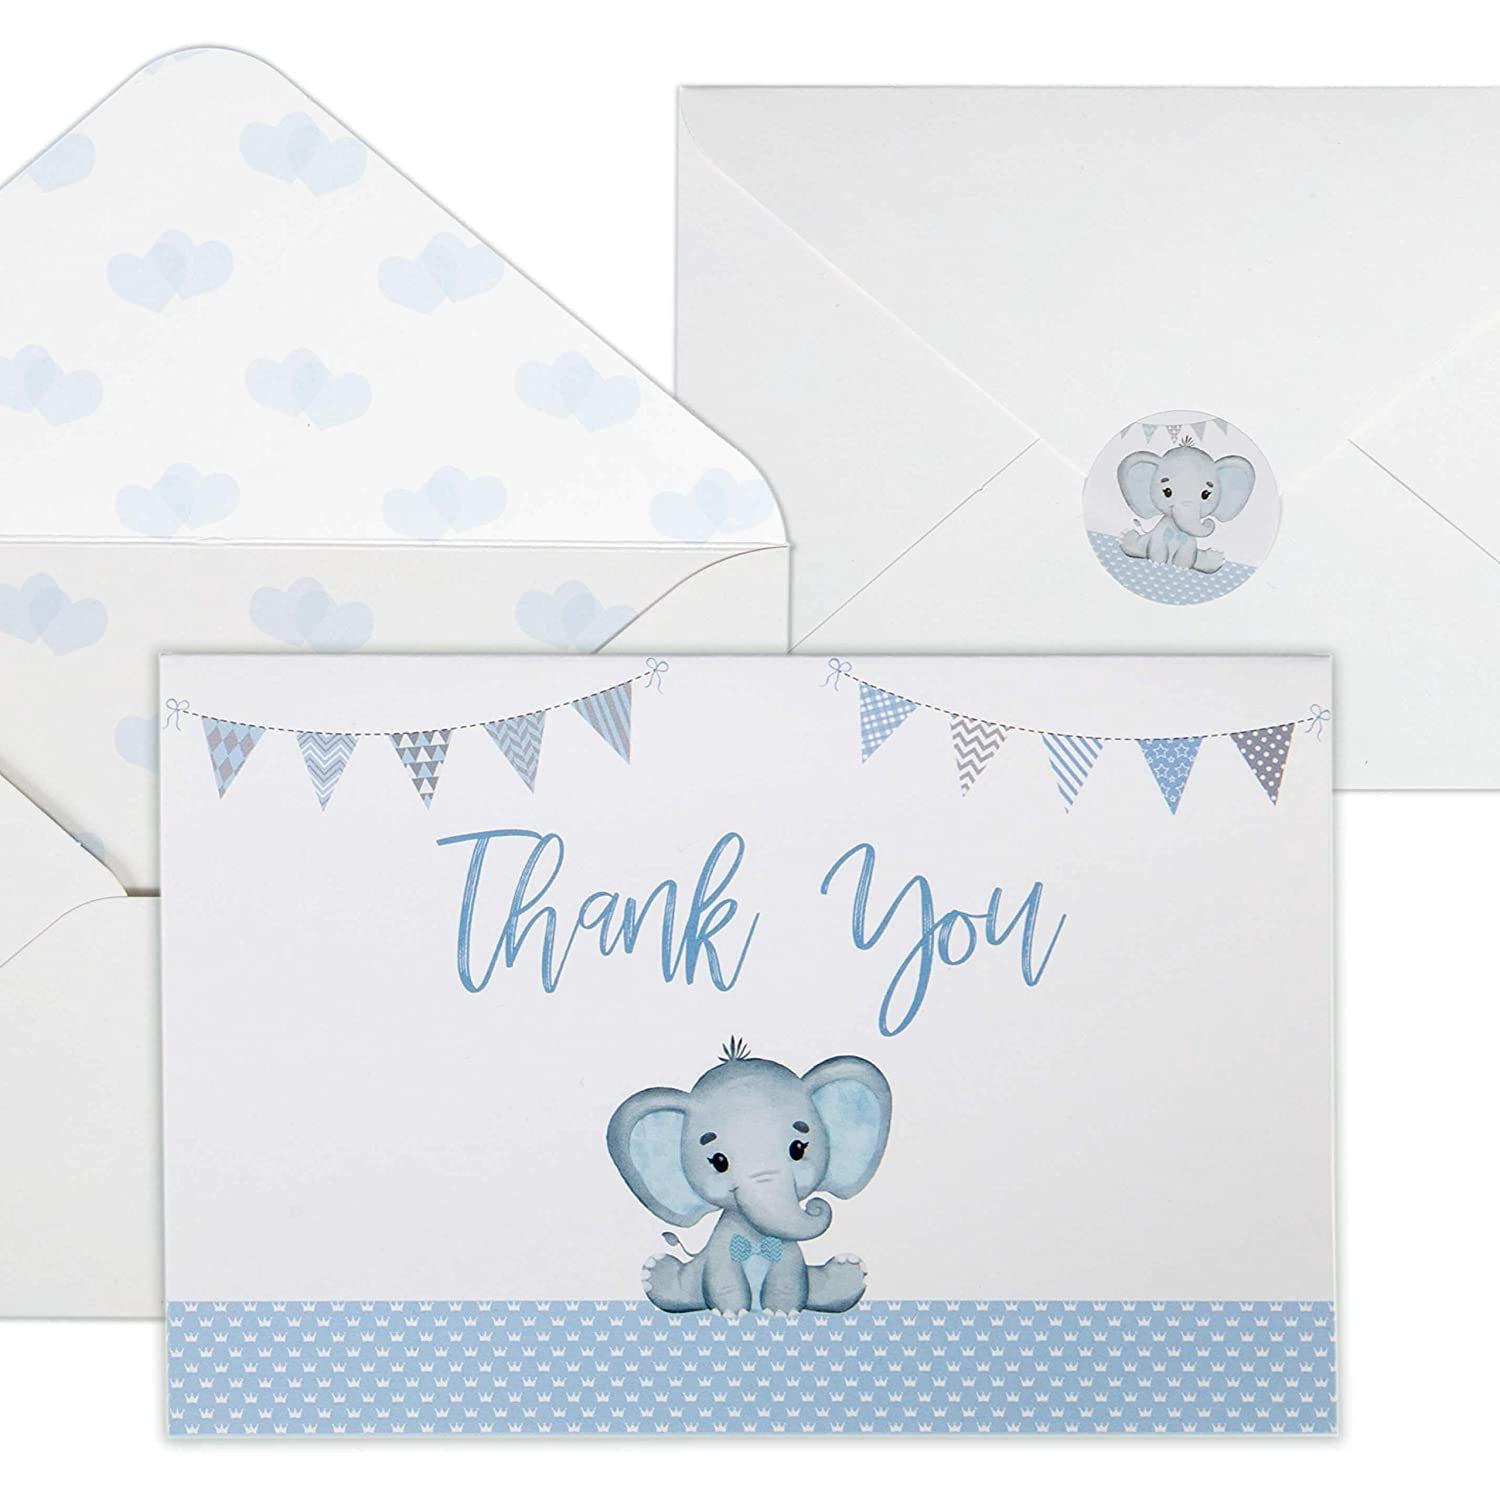 Baby Shower Thank You Cards for Boys. 50 Pack Blue Watercolor Elephant Boys Baby Shower Cards. Cute Thank You Notes with Envelopes Stickers